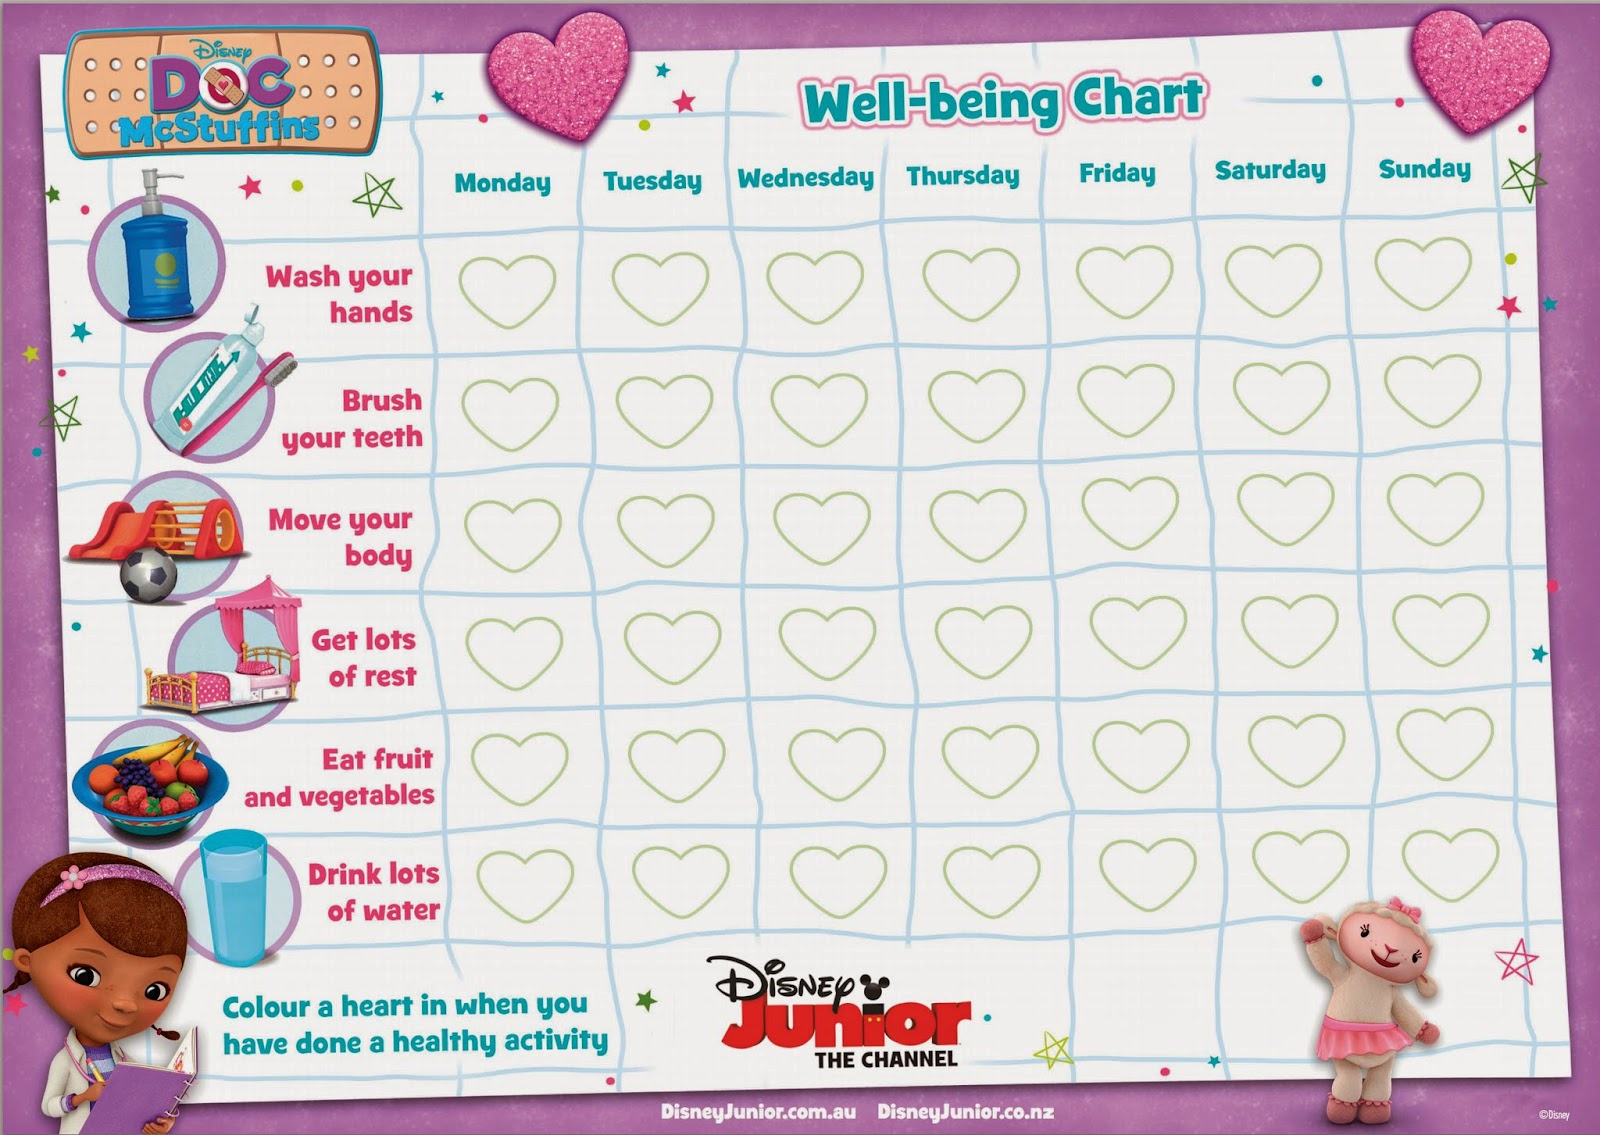 Learn With Play At Home Doc Tober On Disney Junior Promoting Health And Wellbeing For Children